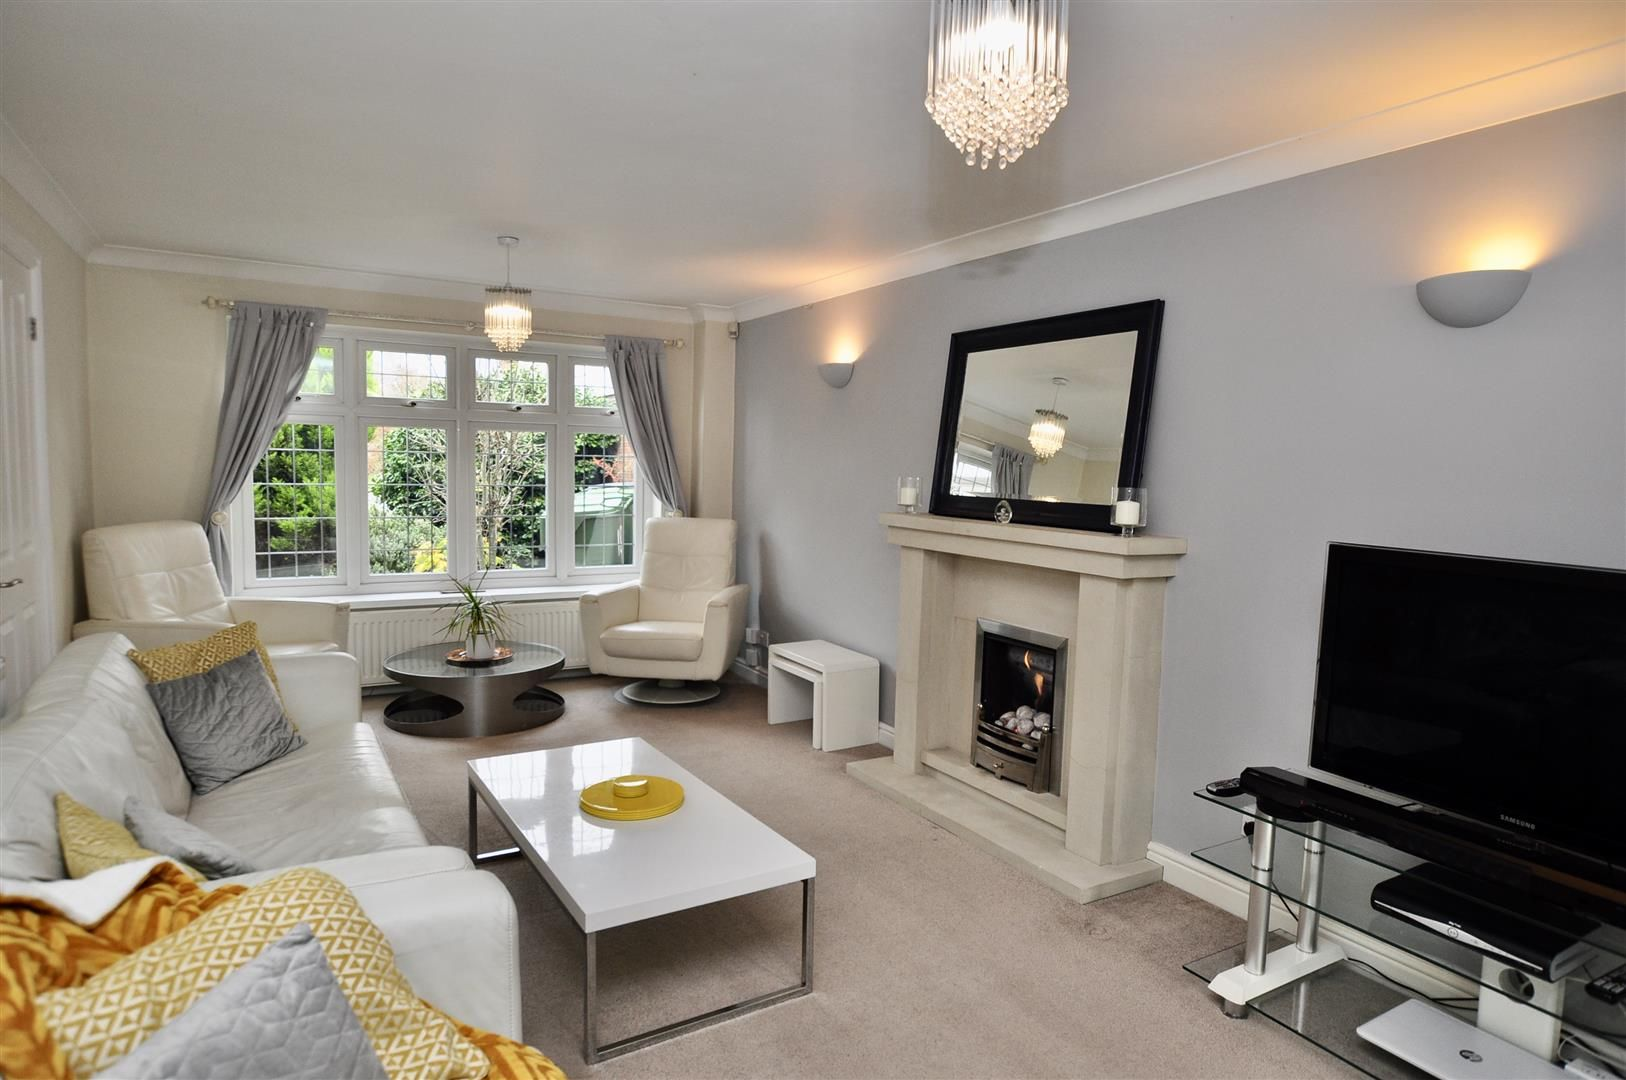 4 bed house for sale in Hagley 13